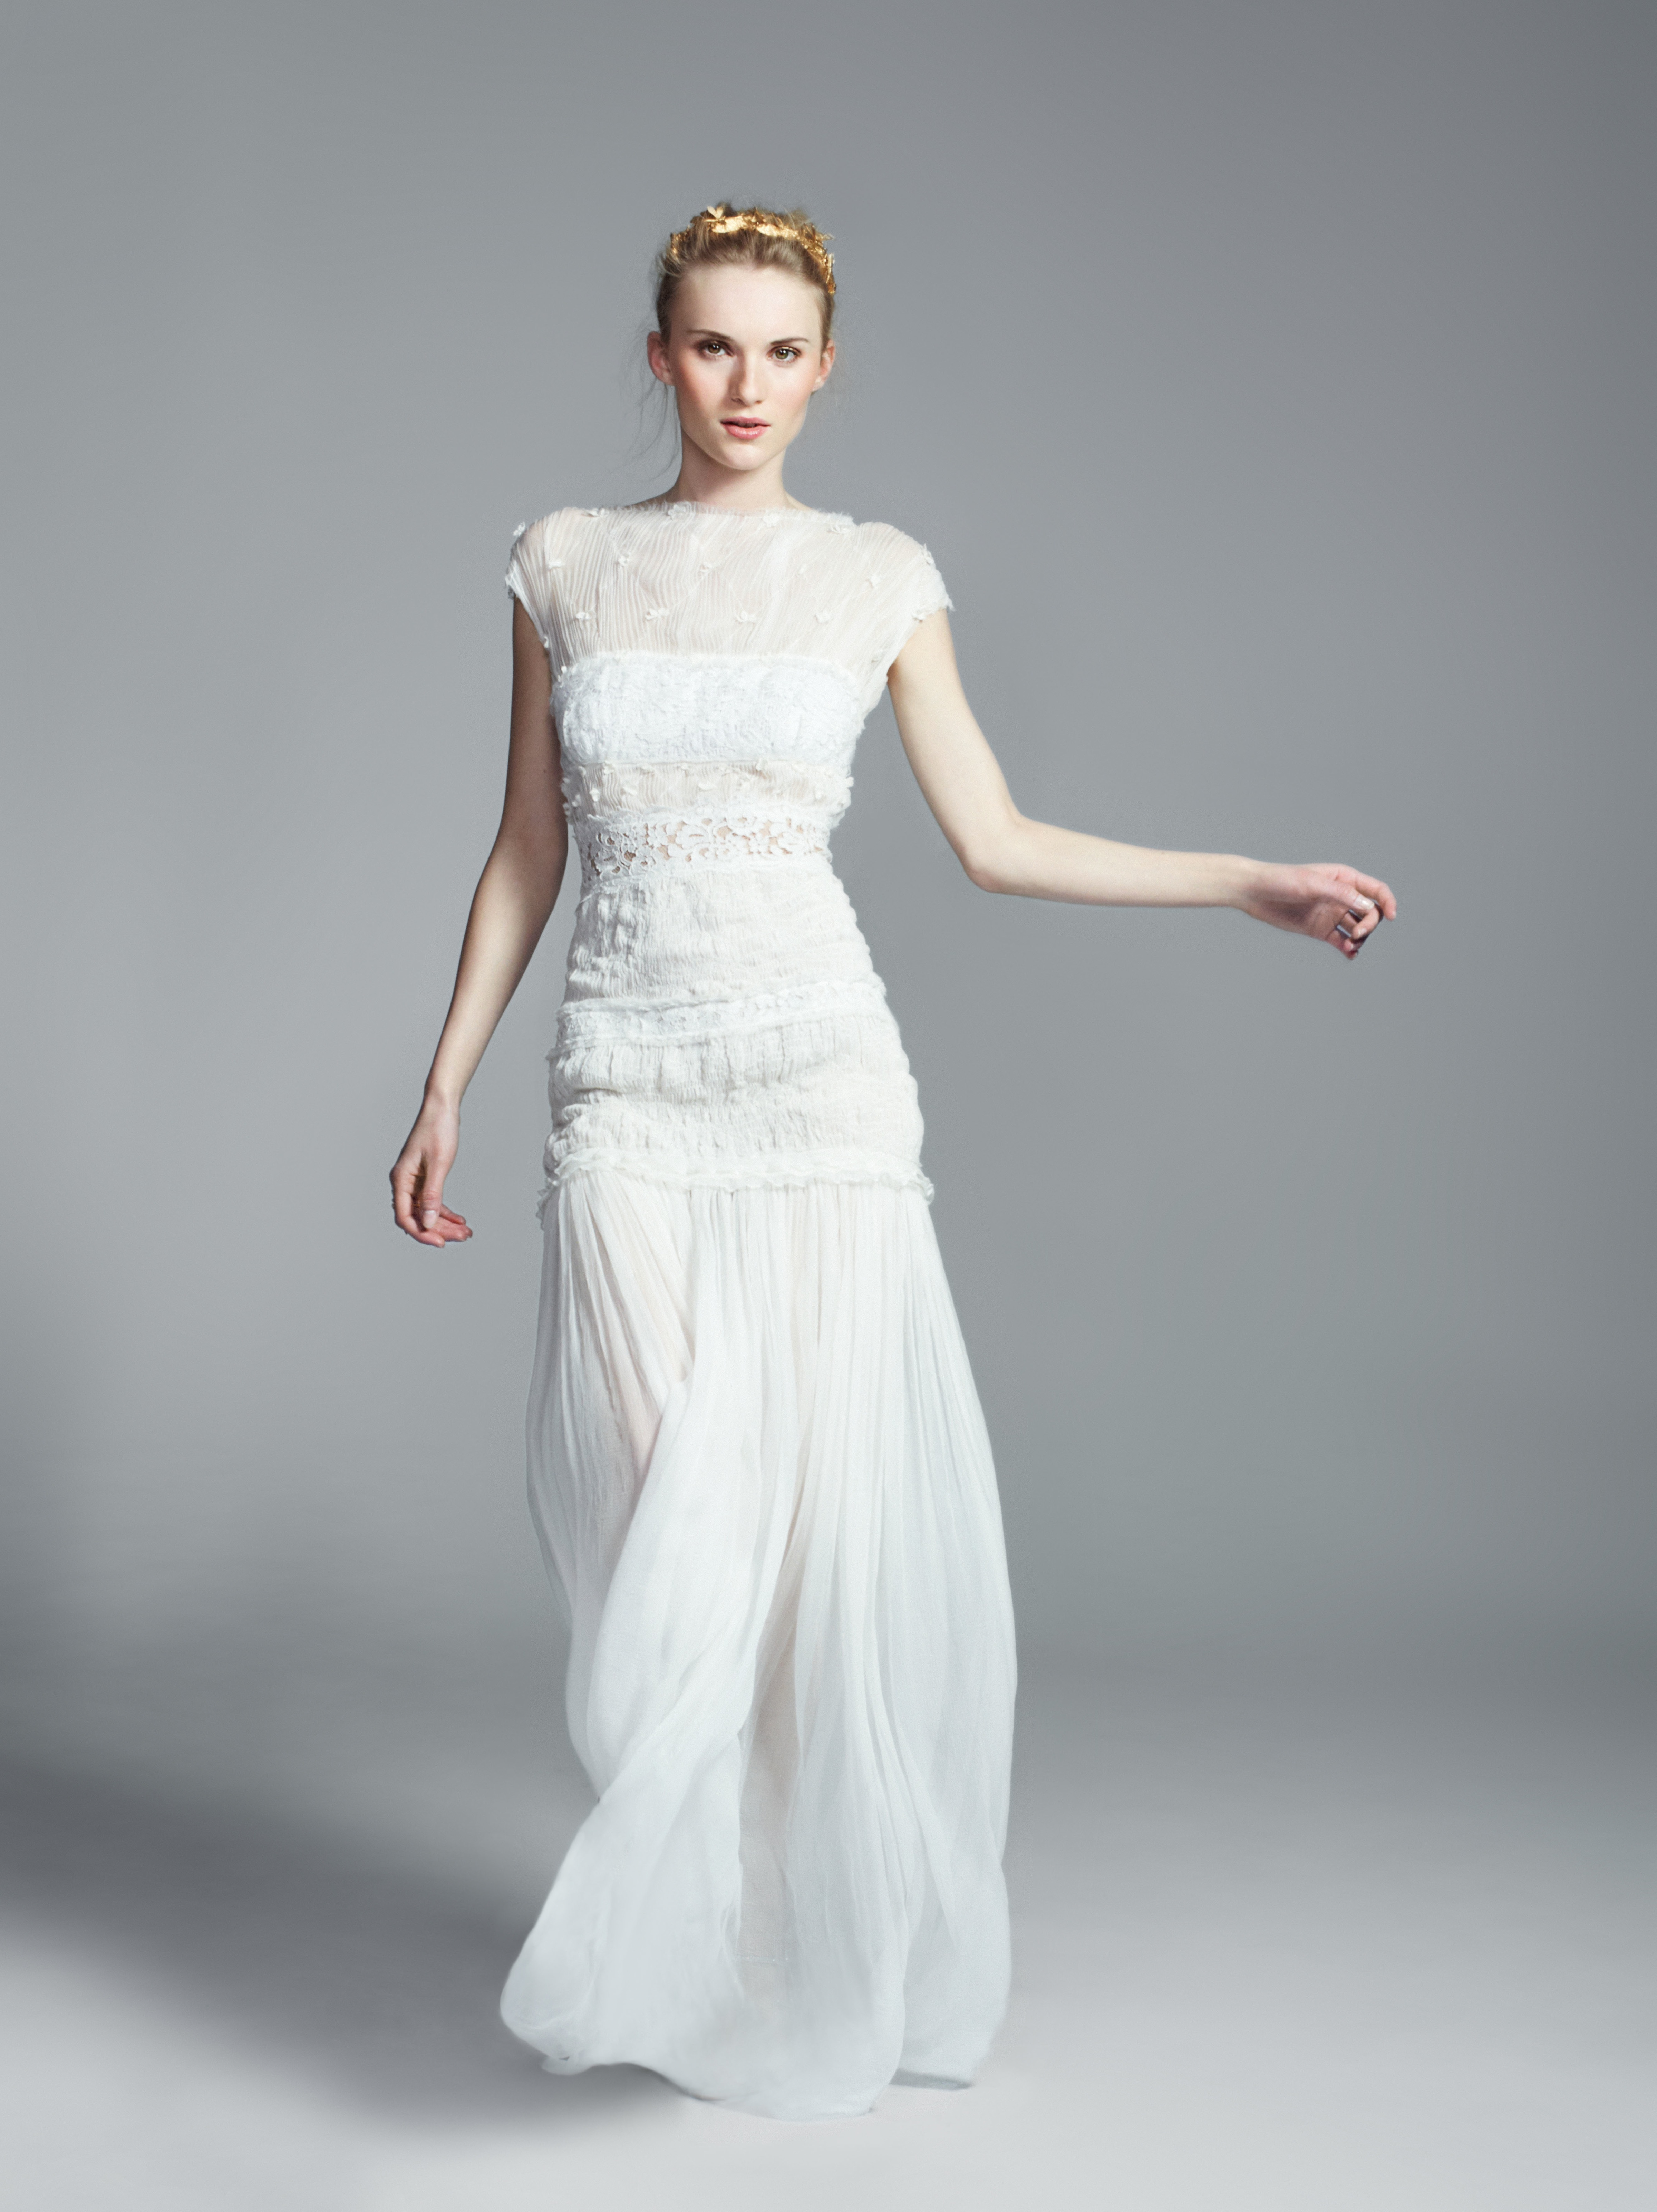 nina ricci wedding dress 2013 exclusive bridal designer collection